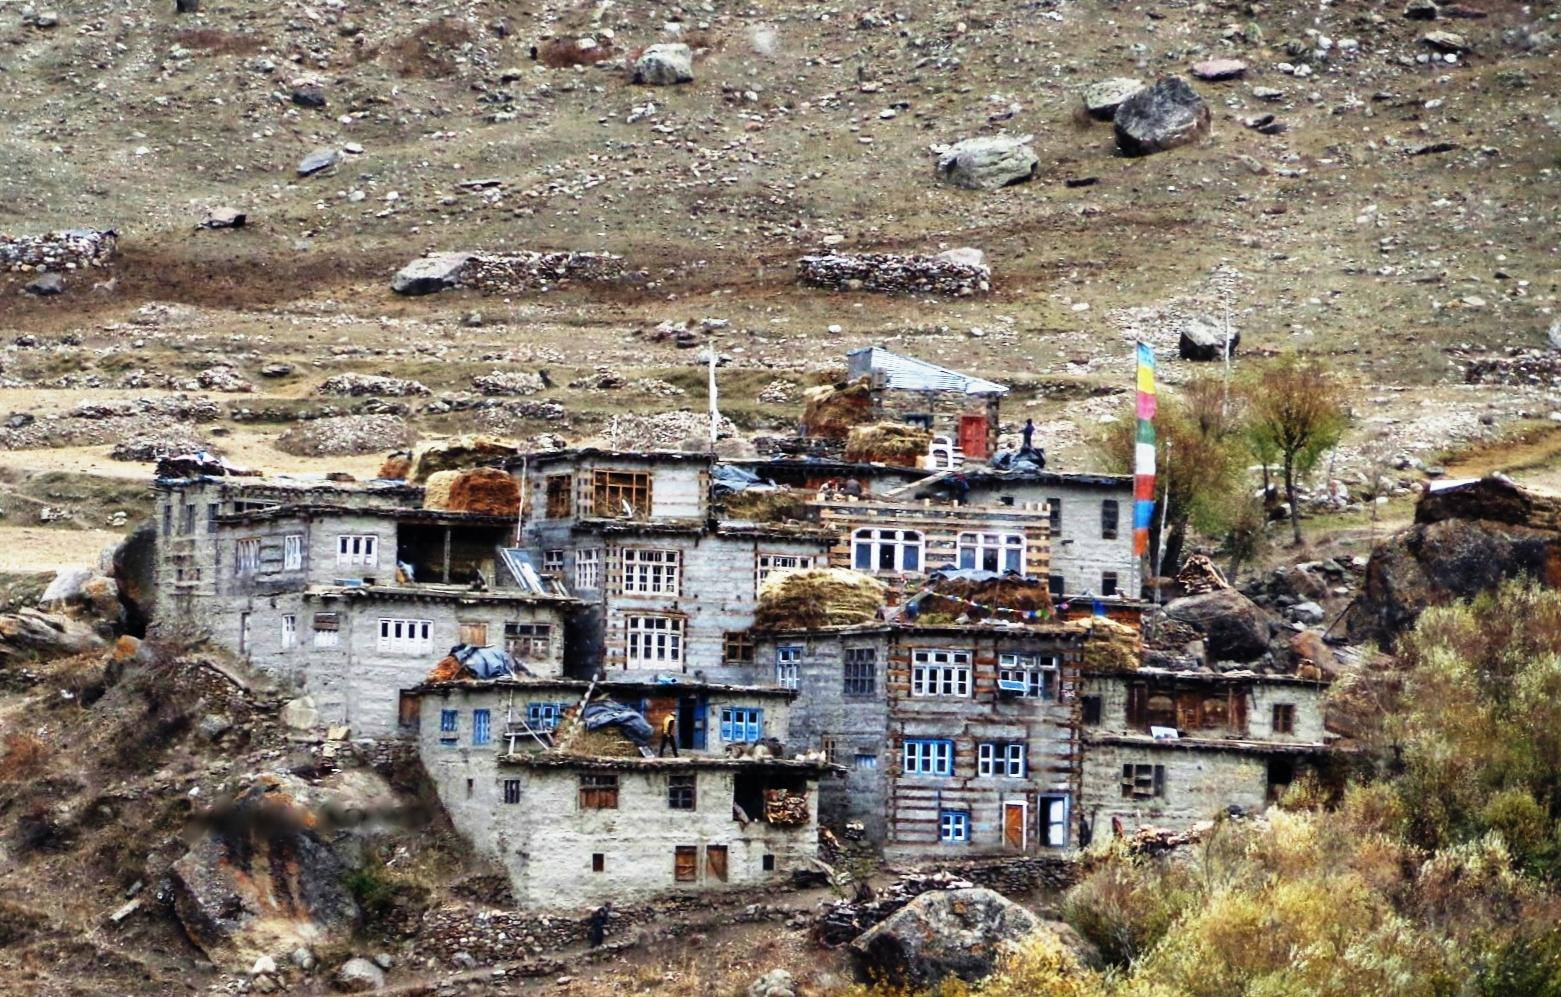 Sumcham, the last Village on the trail that leads to the Hagshu La and into Zanskar